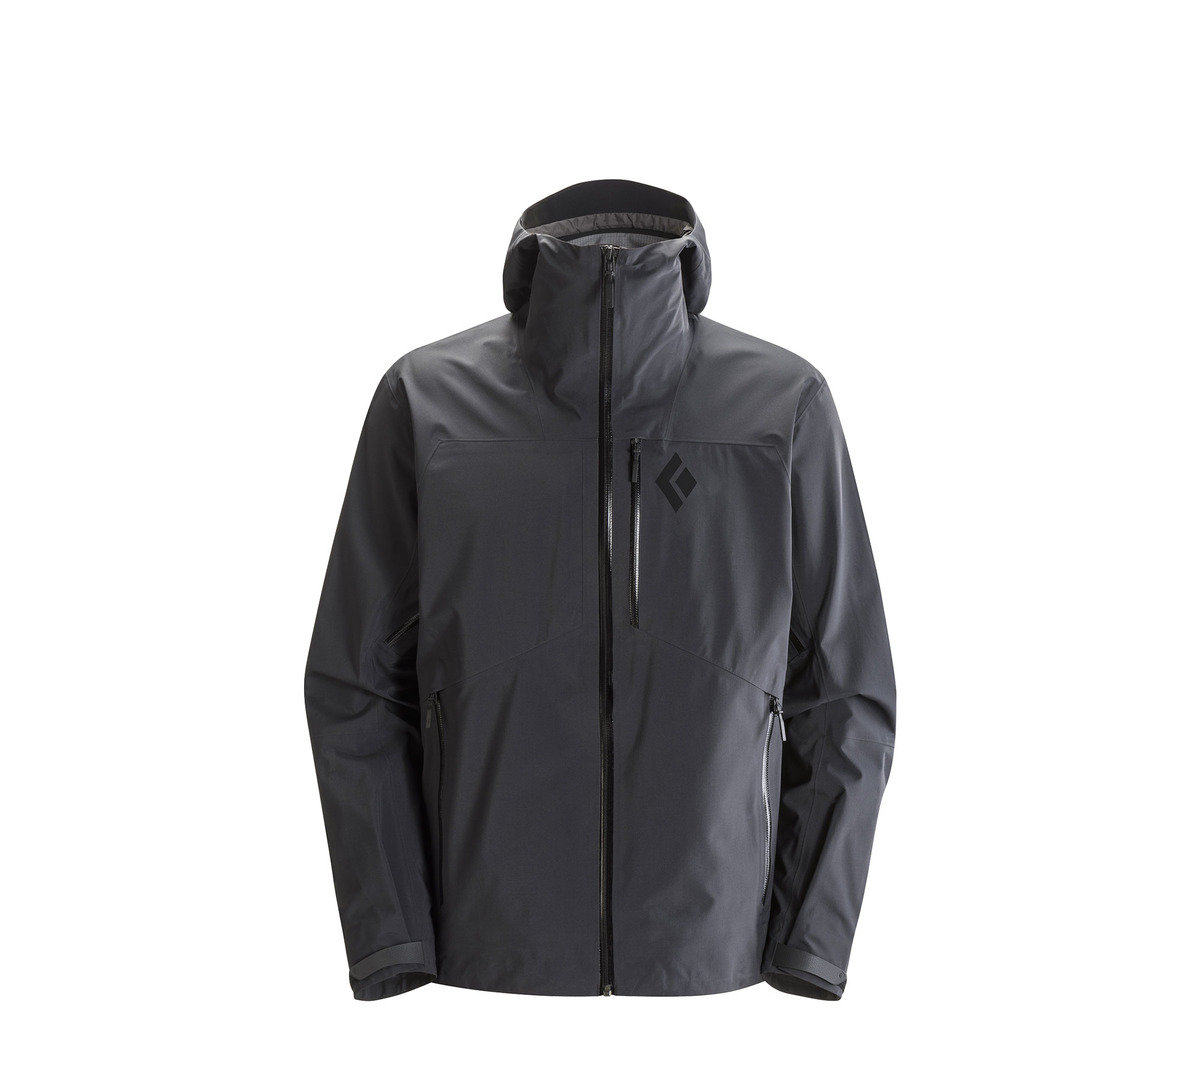 輕身防水褸 Mens Sharp End Shell Gore-Tex